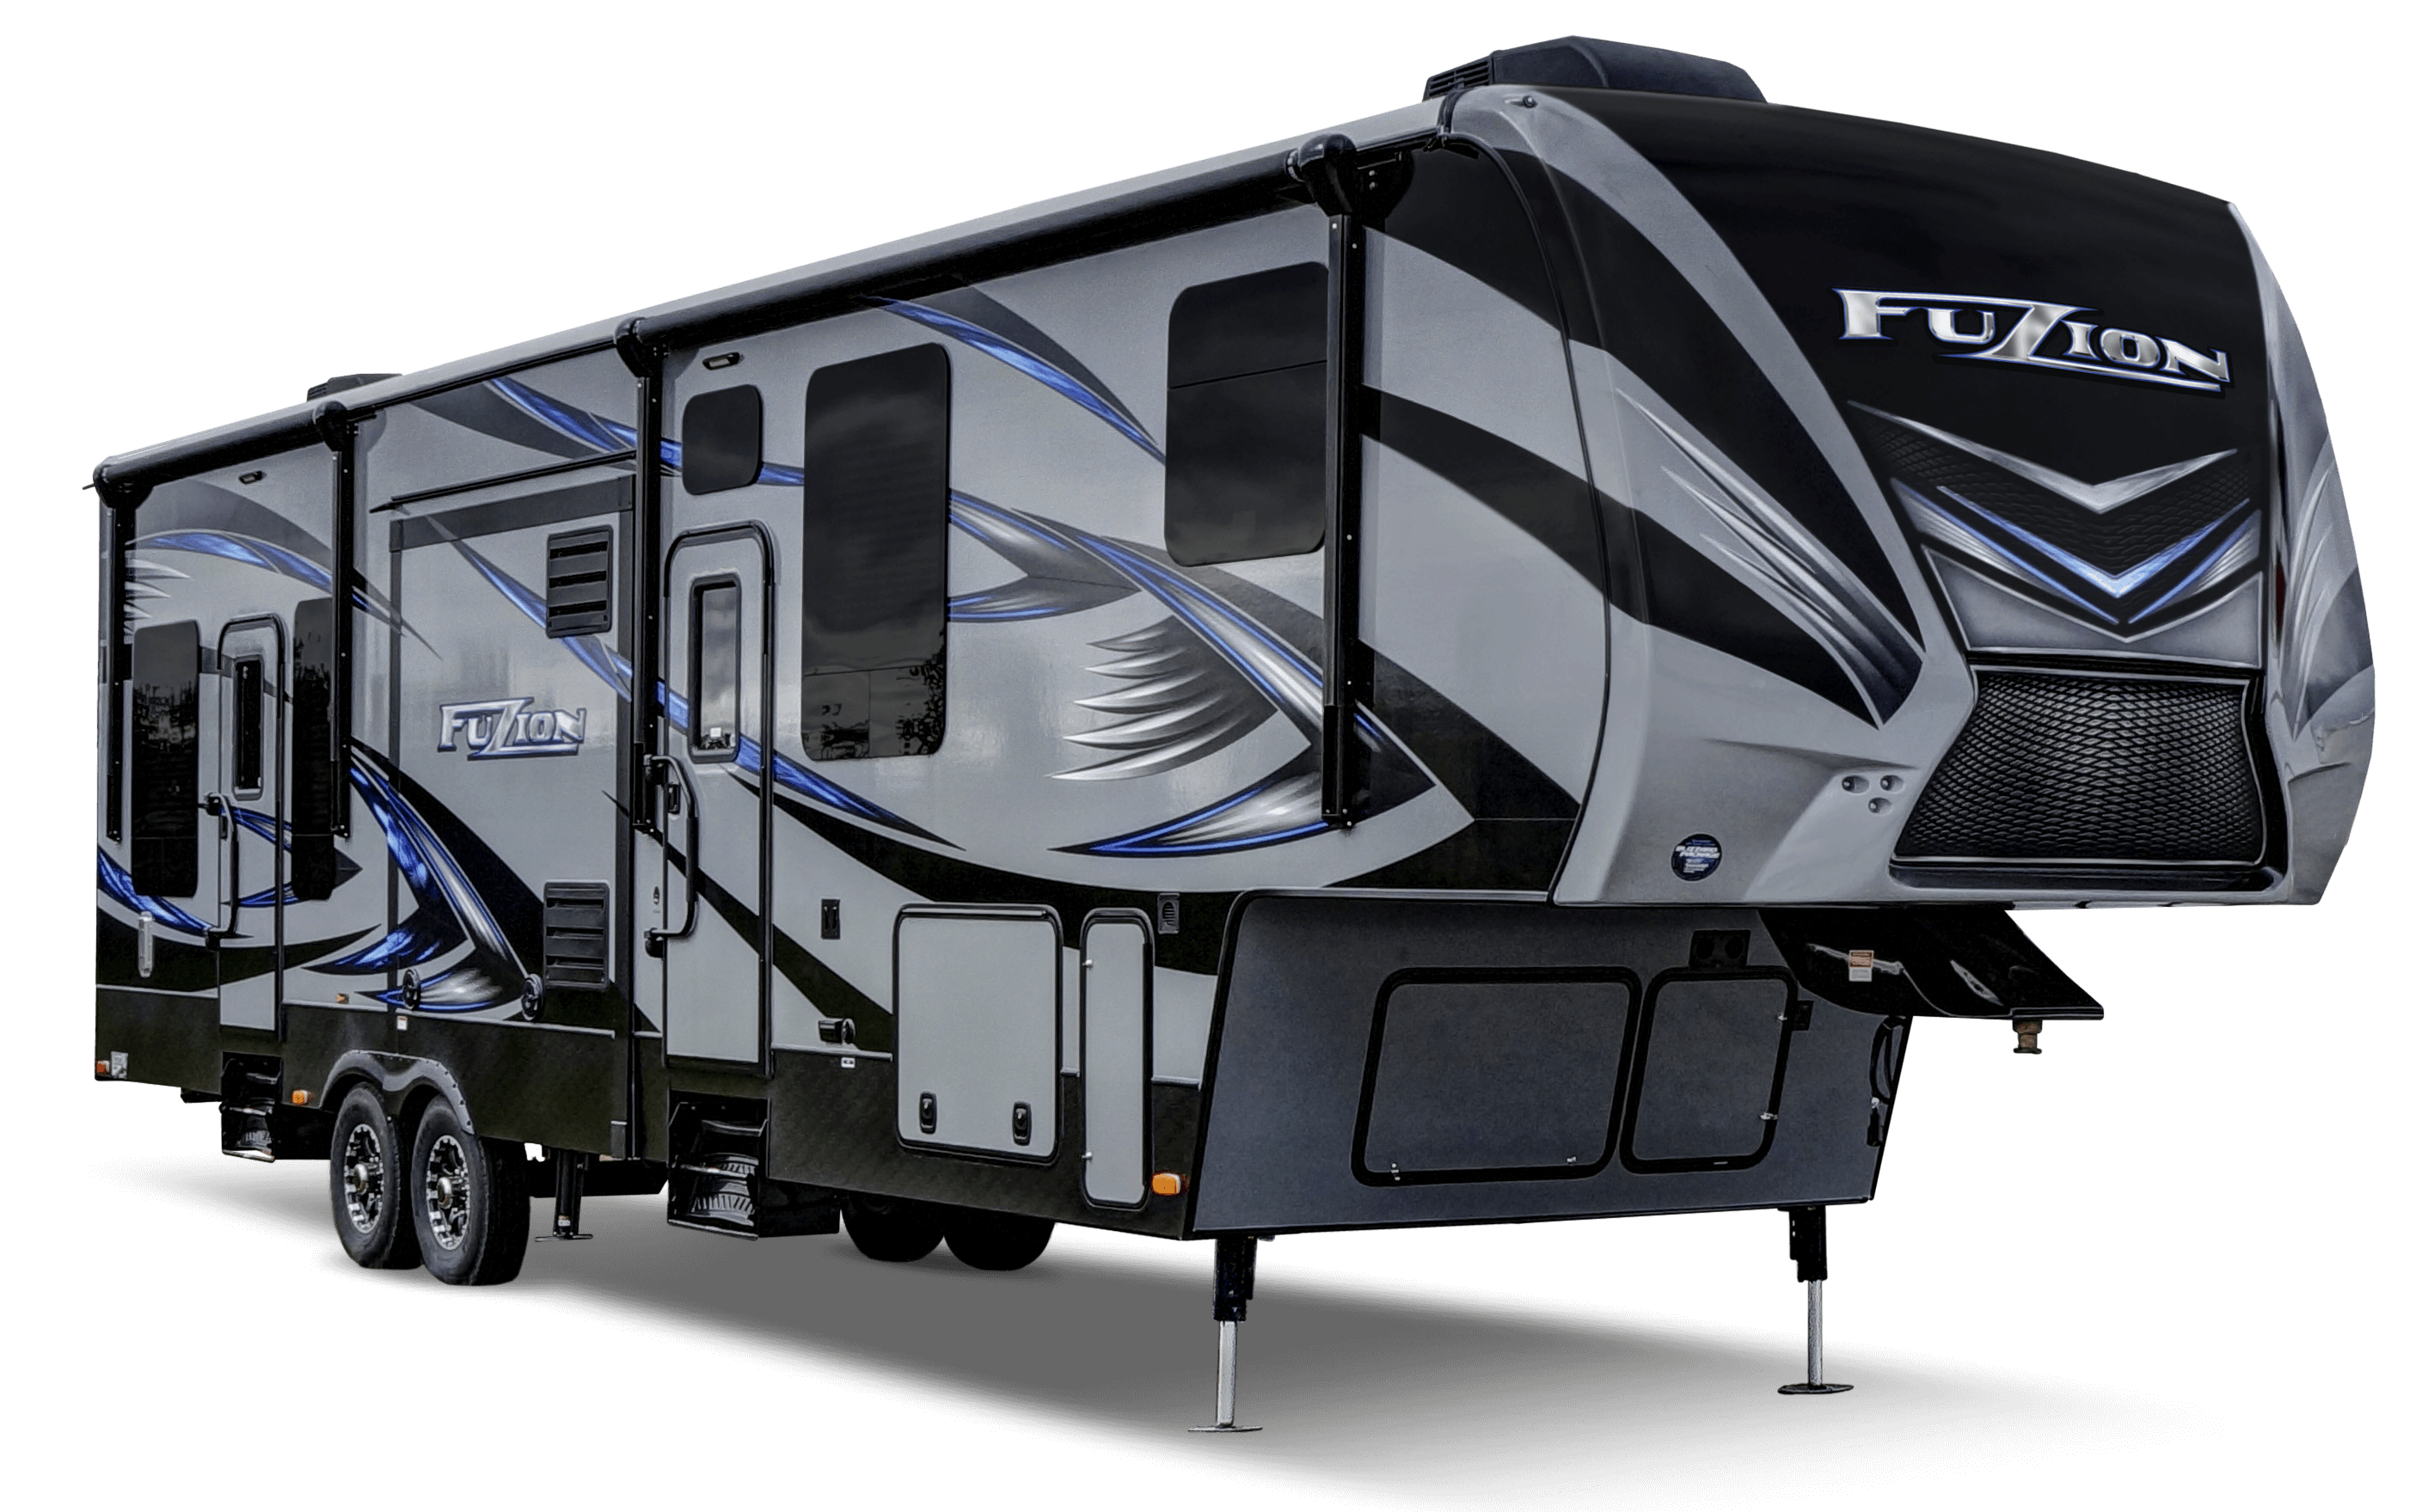 Raptor Rv Floor Plans Keystone Toy Hauler Fifth Wheel